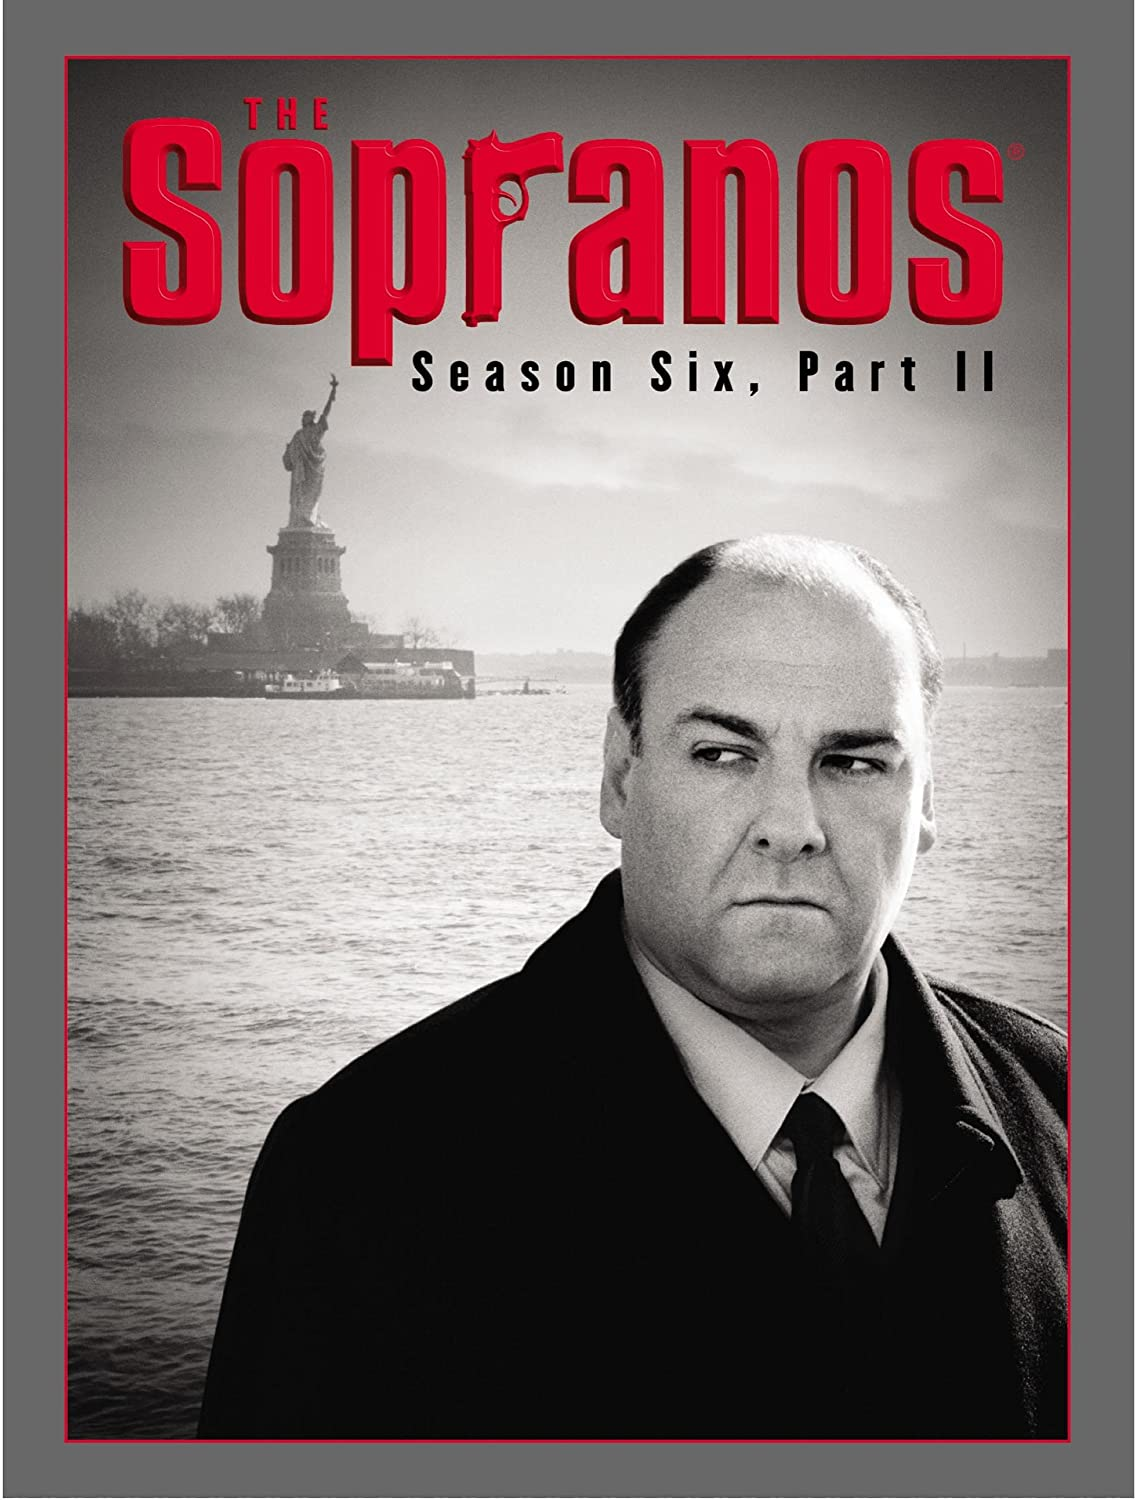 The Sopranos: Season Six, Part 2 Edie Falco James Gandolfini Michael Imperioli Tony Sirico